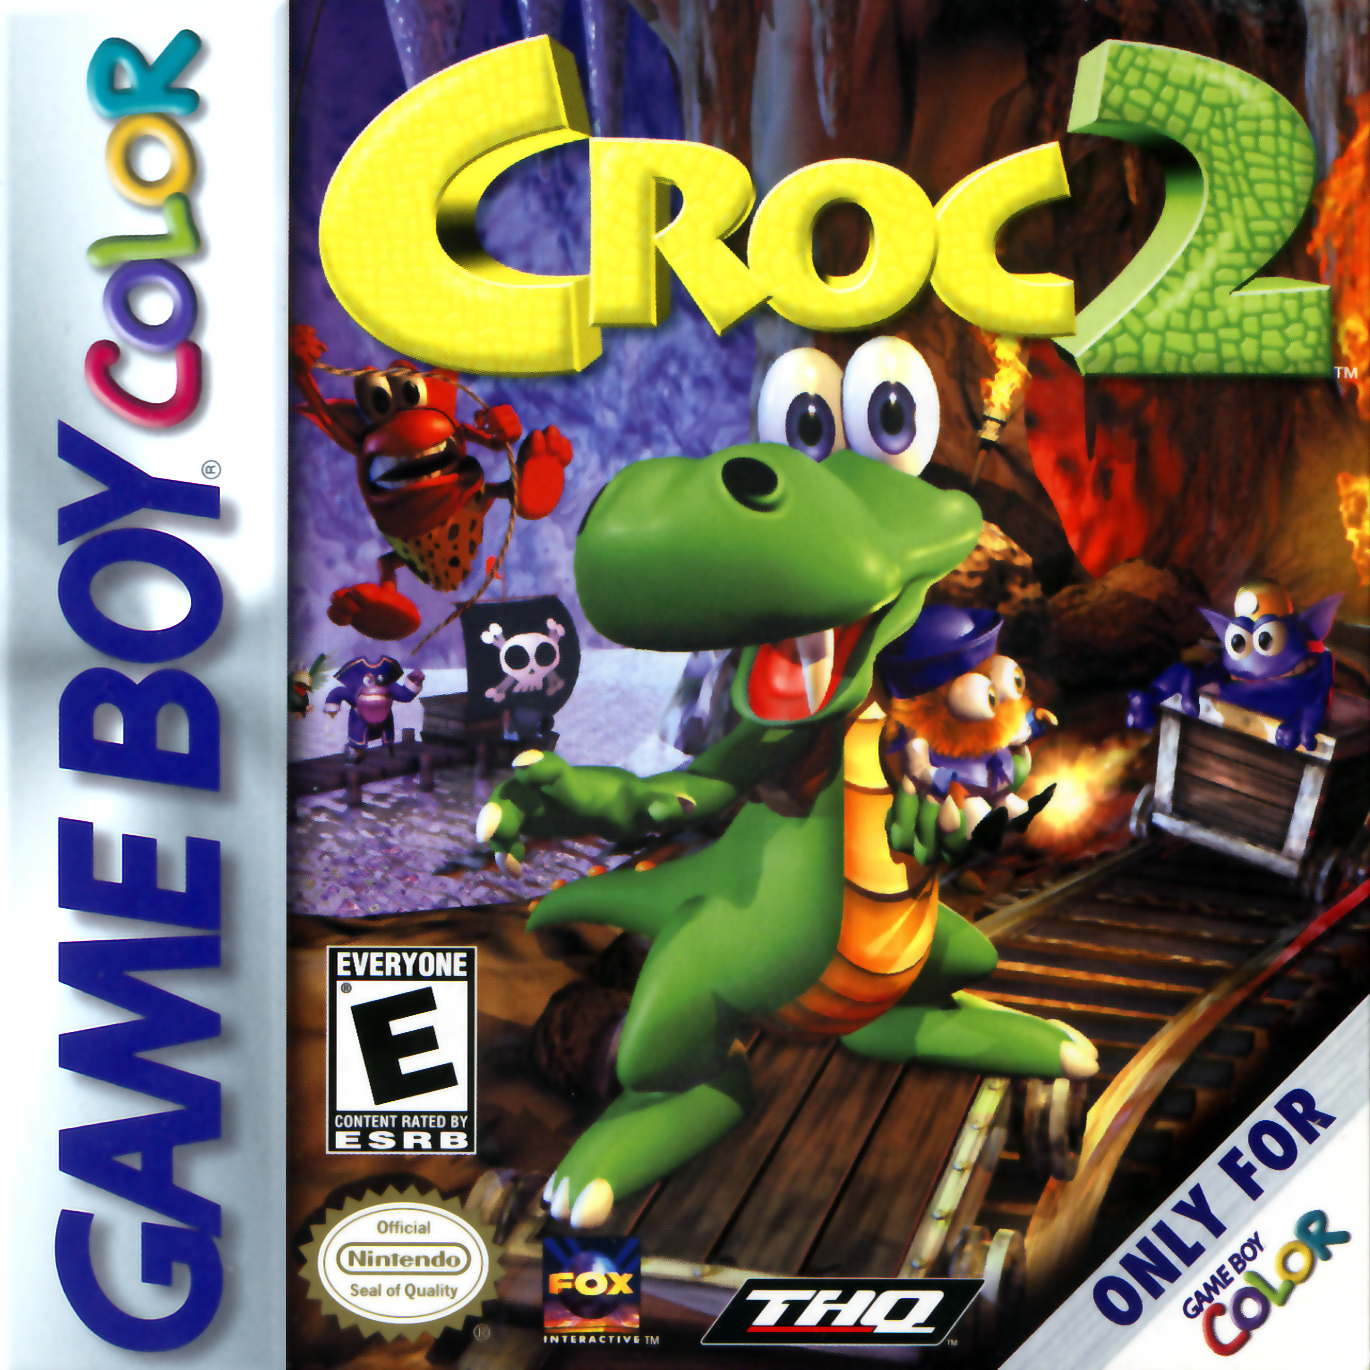 Game boy color online games - Croc 2 Nintendo Game Boy Color Cover Artwork